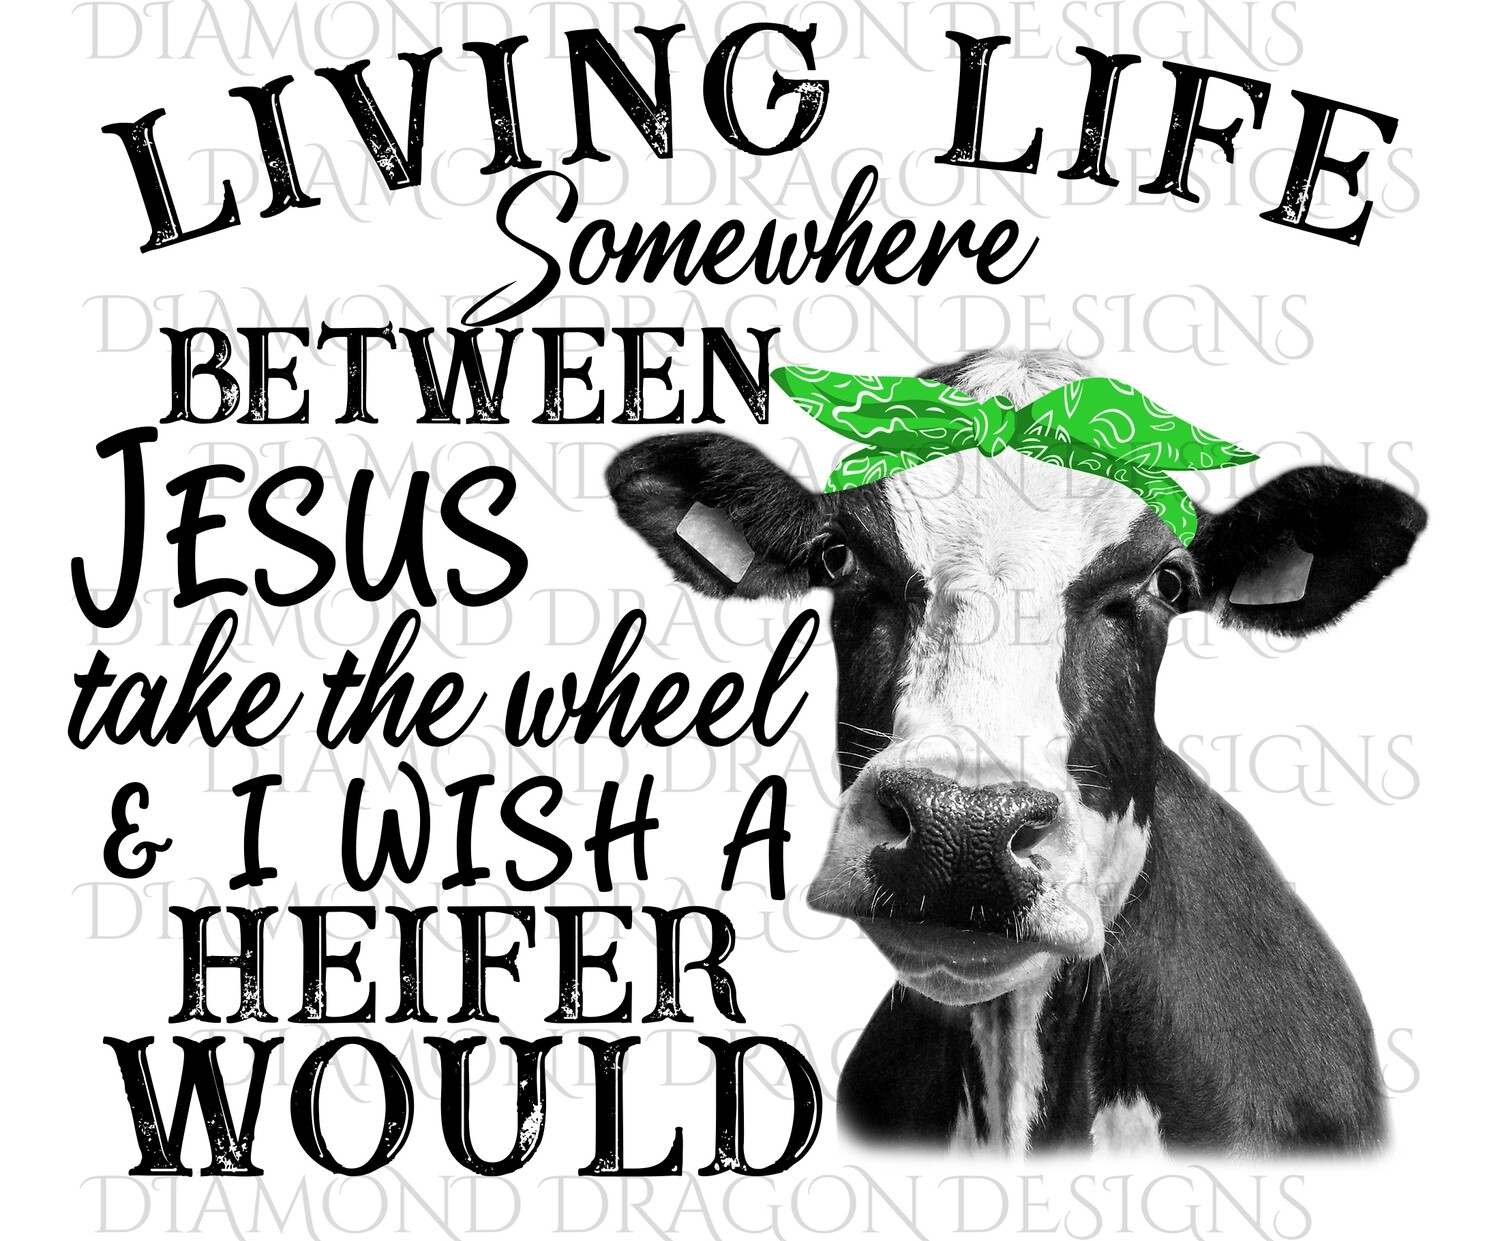 Cows - Heifer, Living Life Somewhere Between Jesus Take the Wheel & I Wish a Heifer Would, Green Bandana, Digital Image